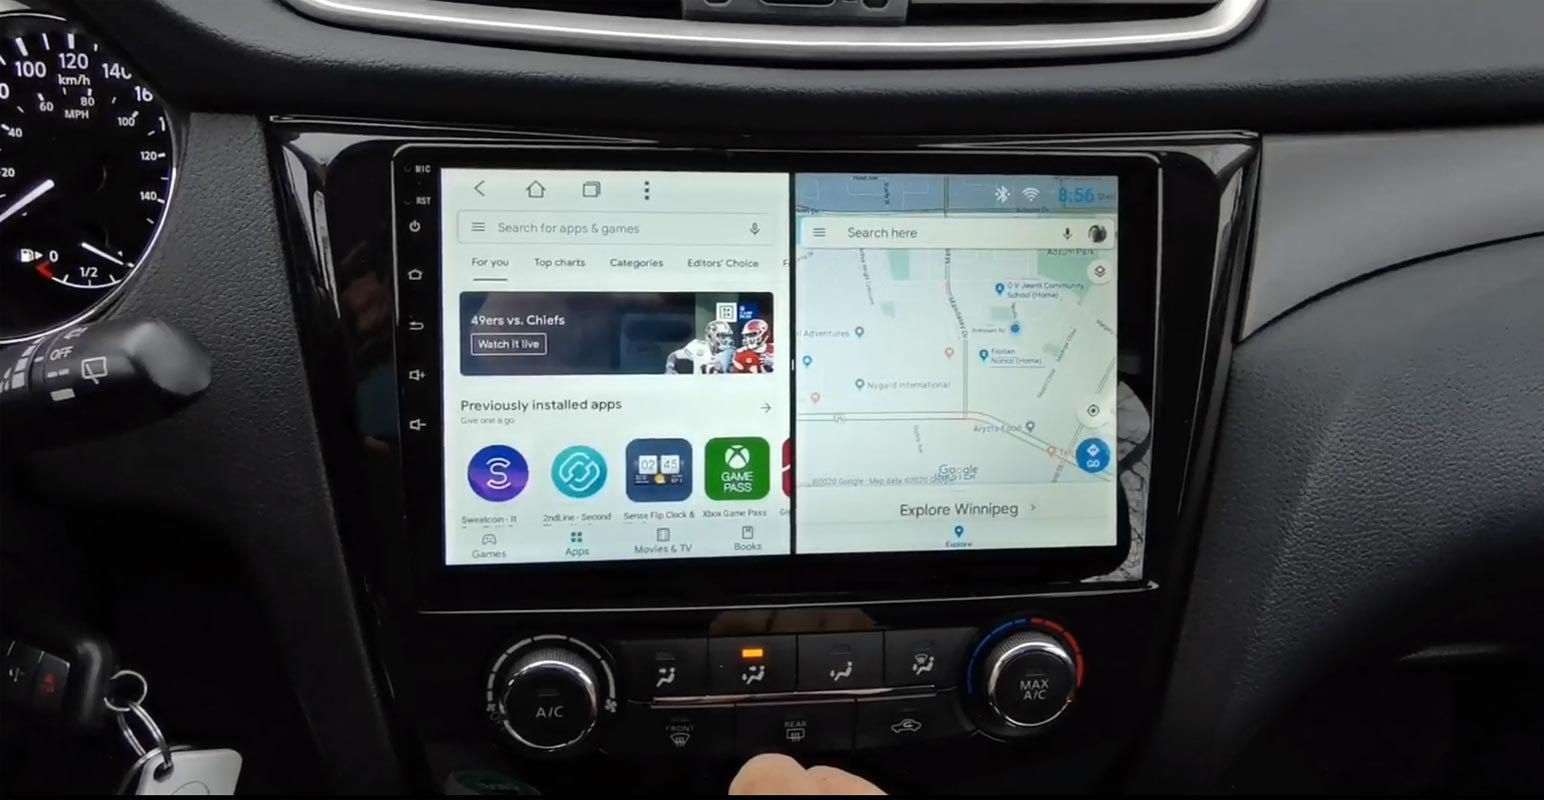 Android Auto Split Screen in Car